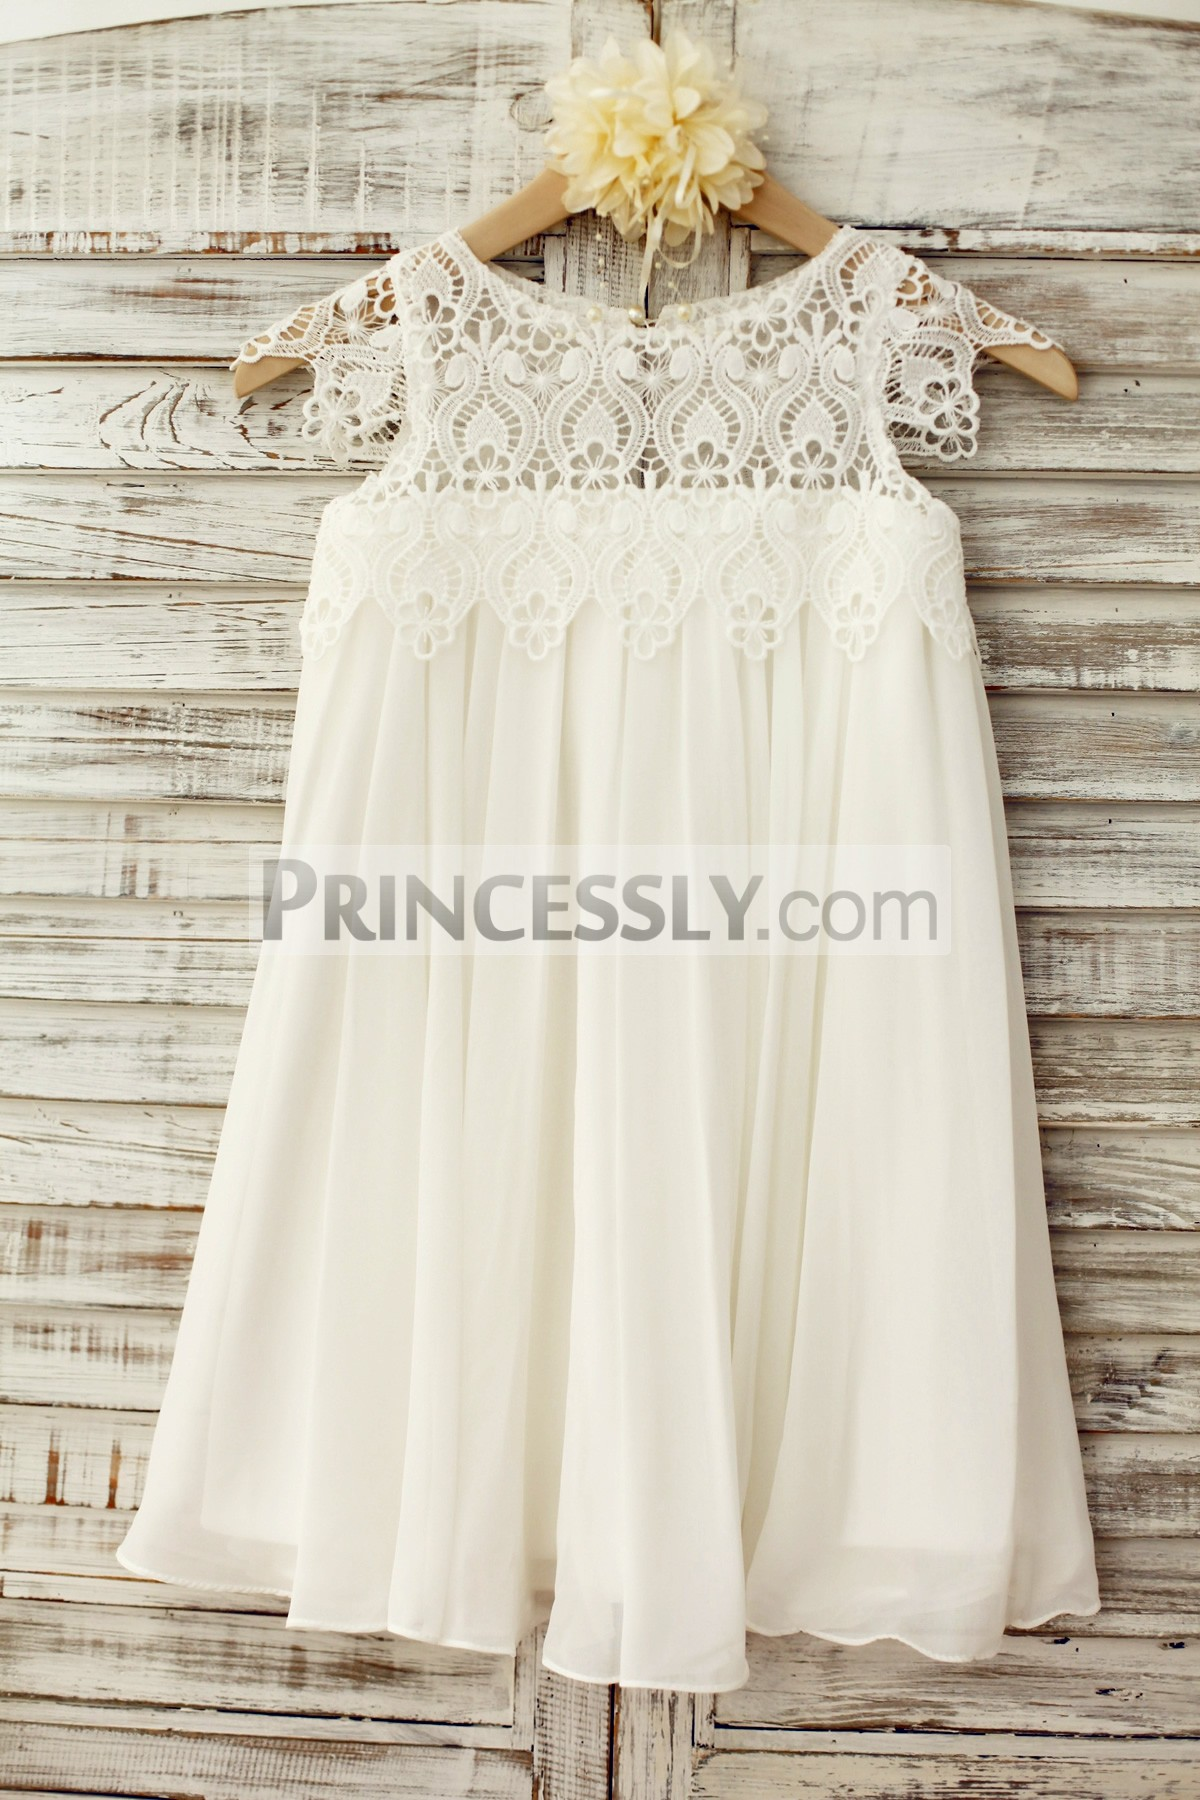 Boho Beach Lace Cap Sleeves Ivory Chiffon Flower Girl ...